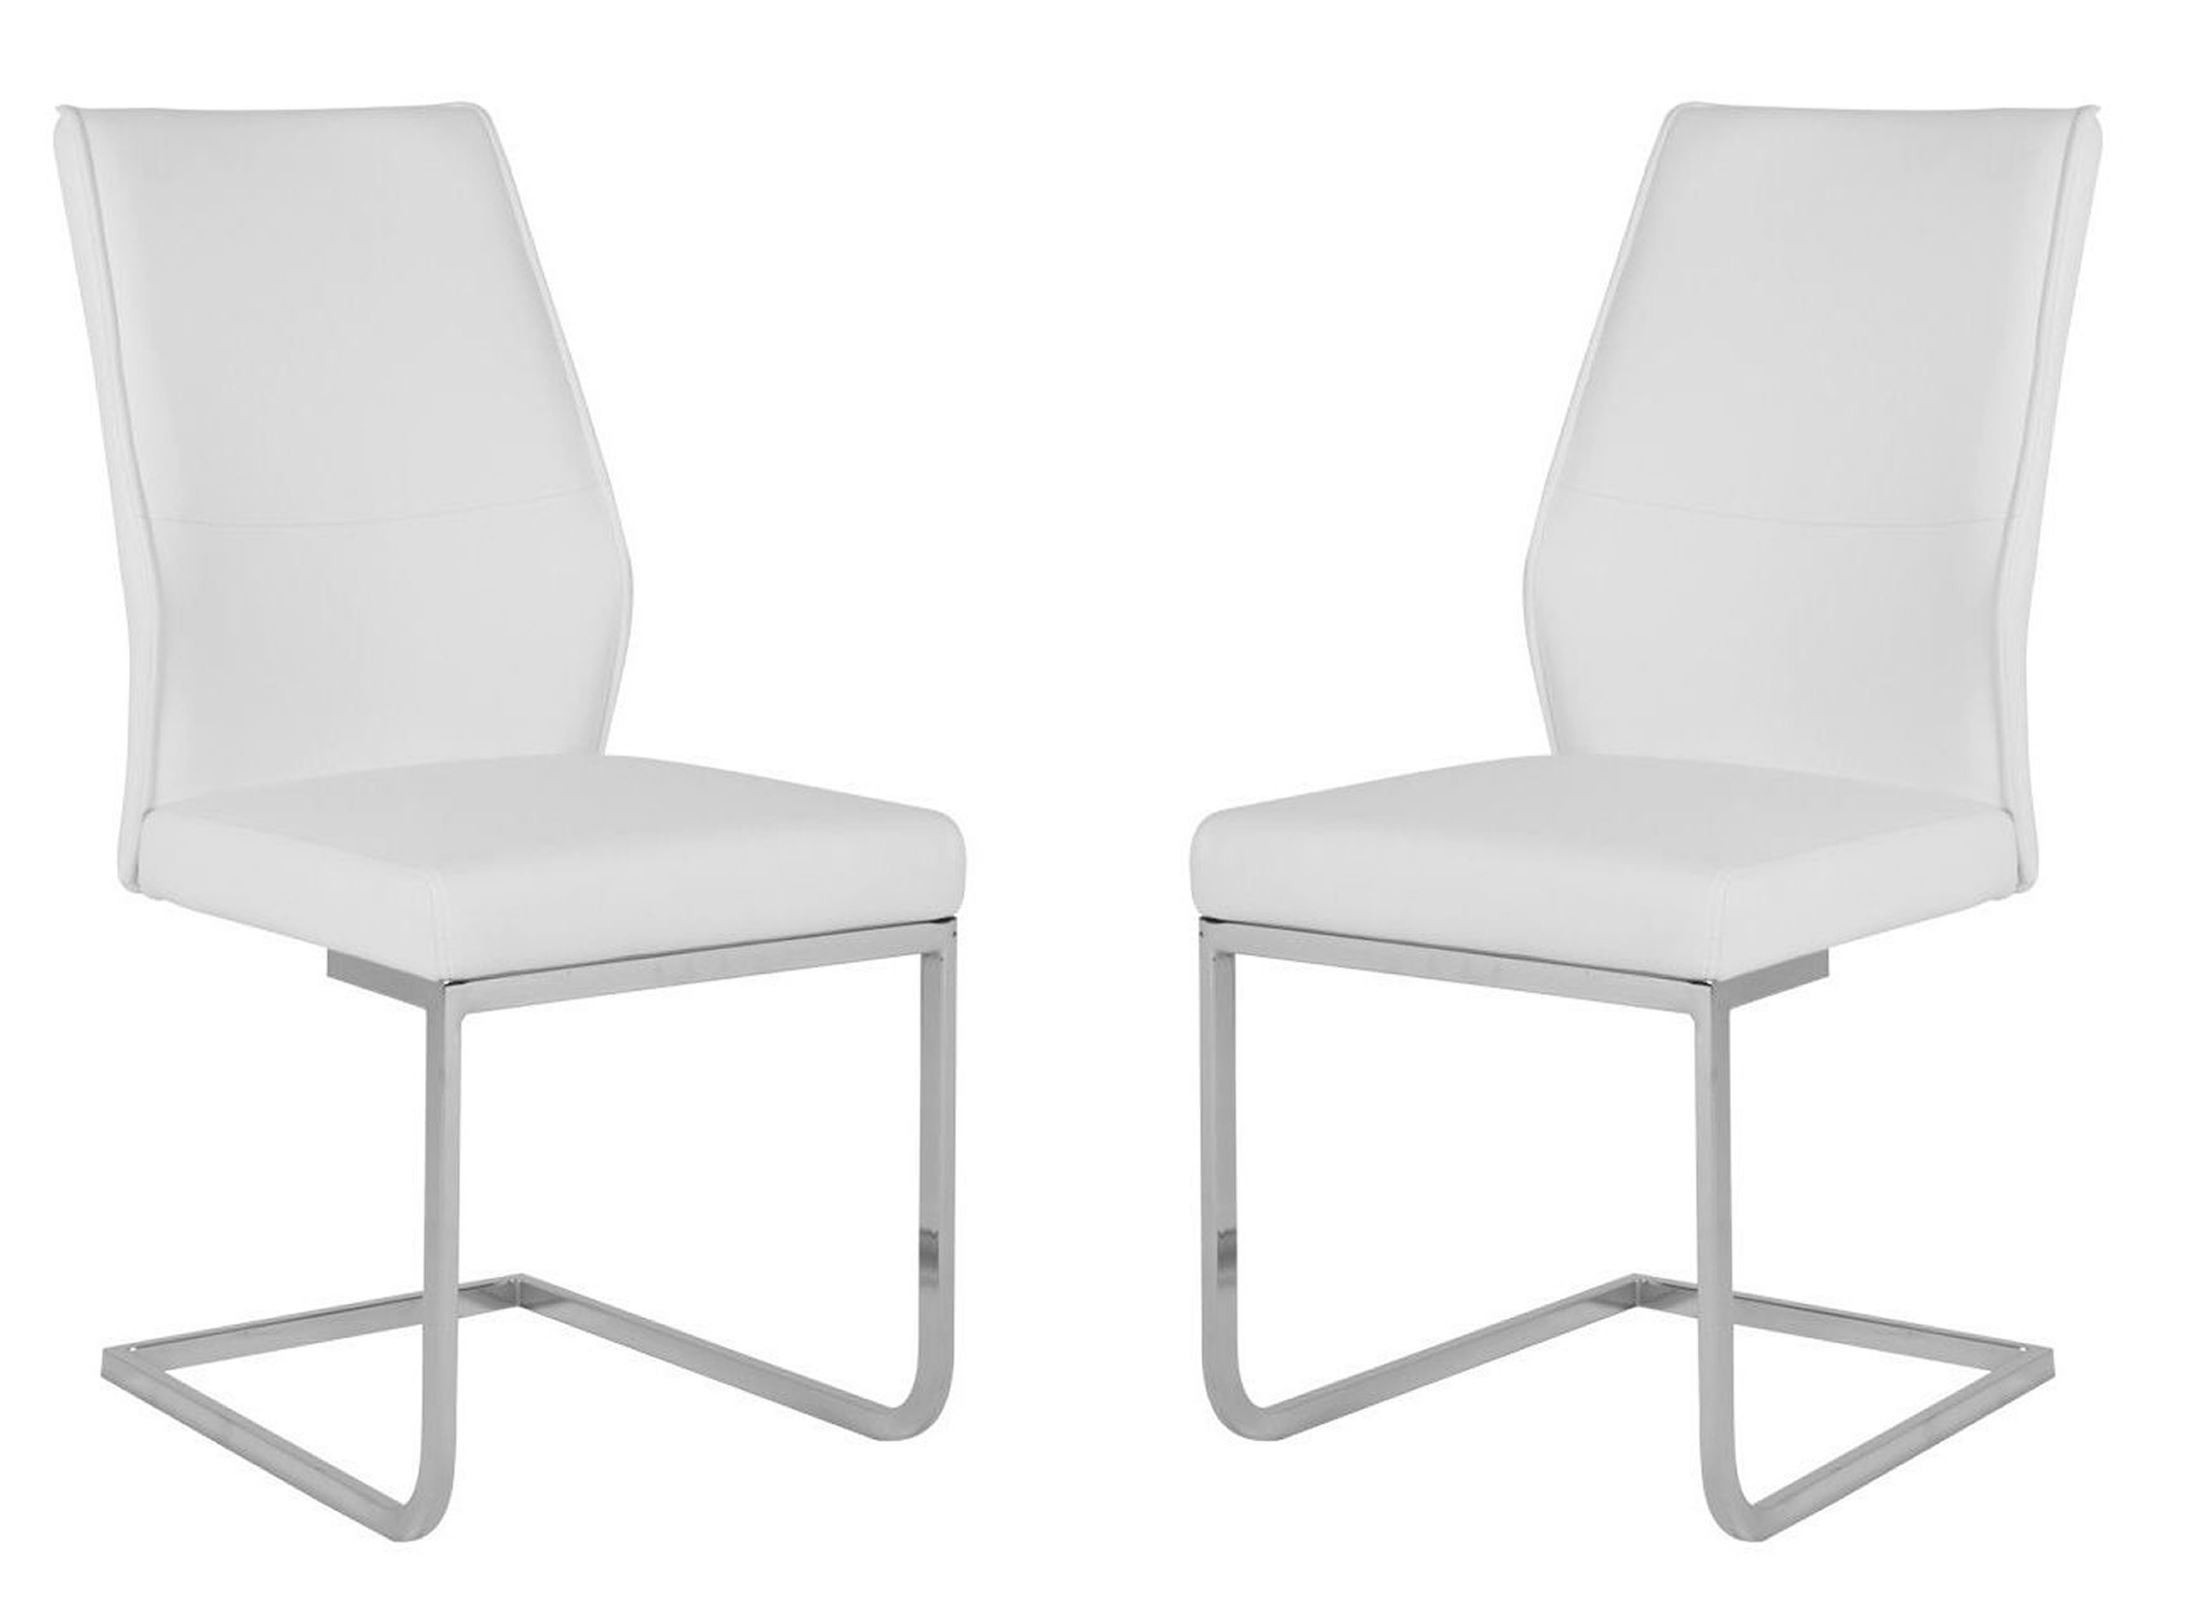 regis sydney white dining chair set of 2 from